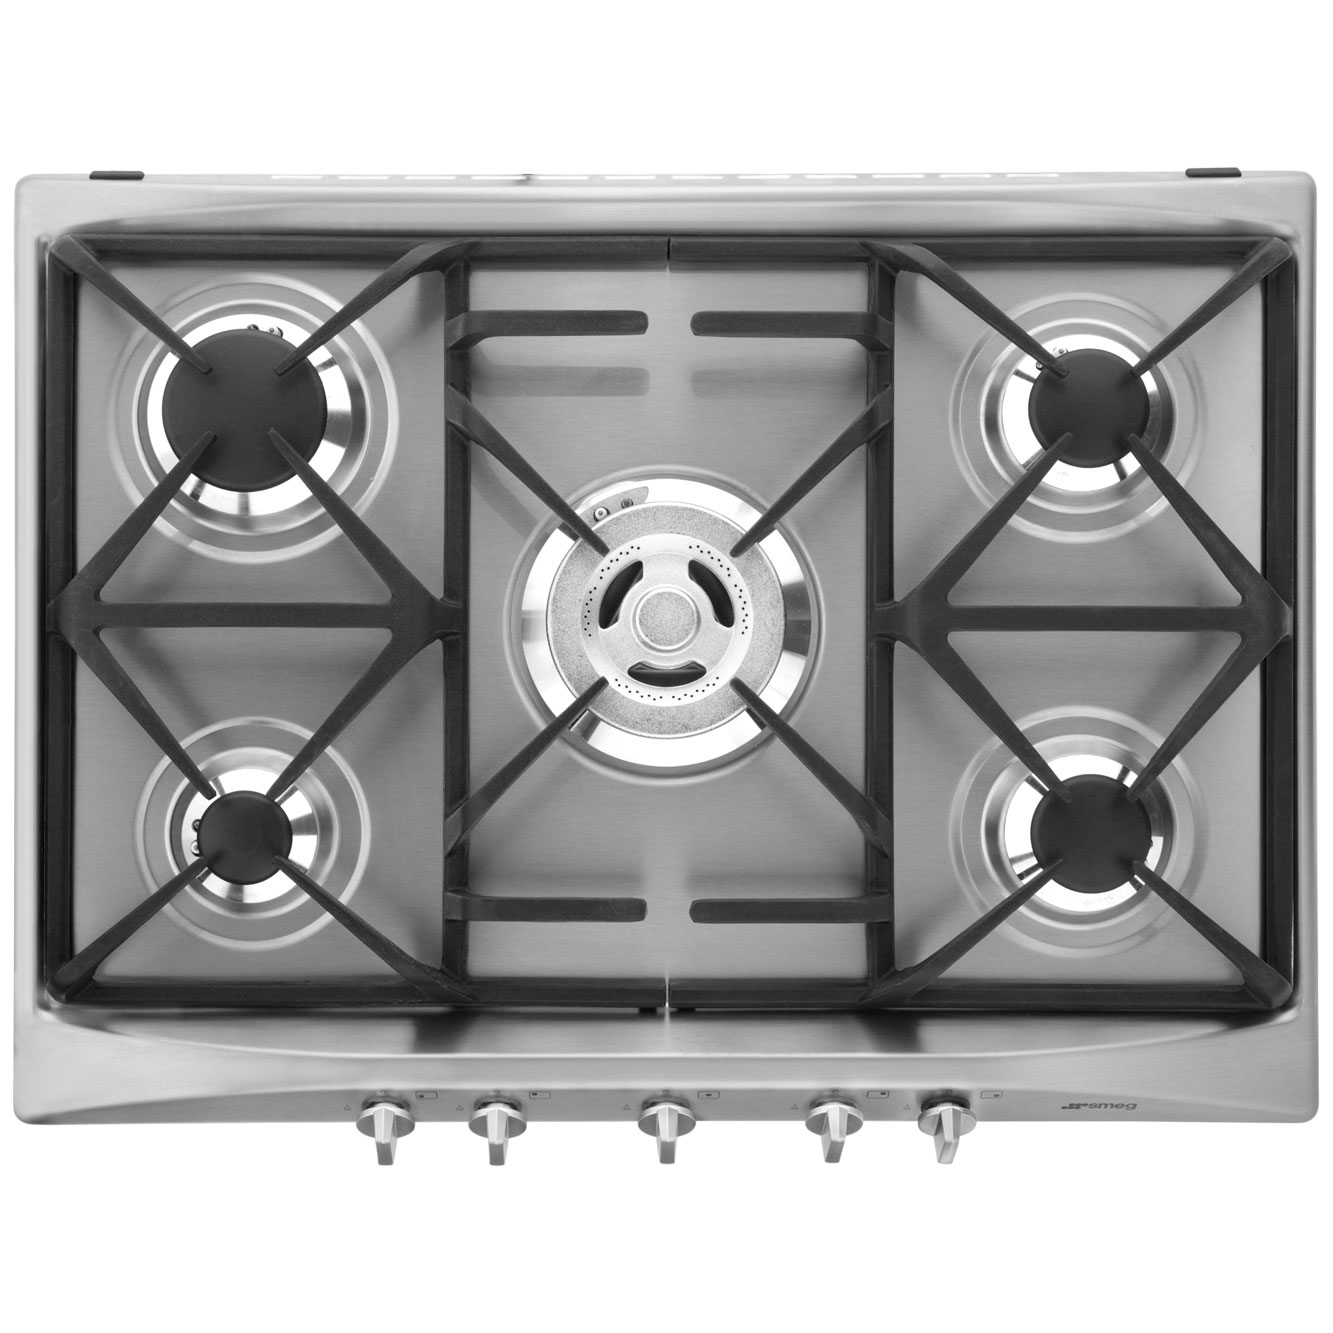 Buy cheap Smeg stainless steel gas hob  compare Hobs